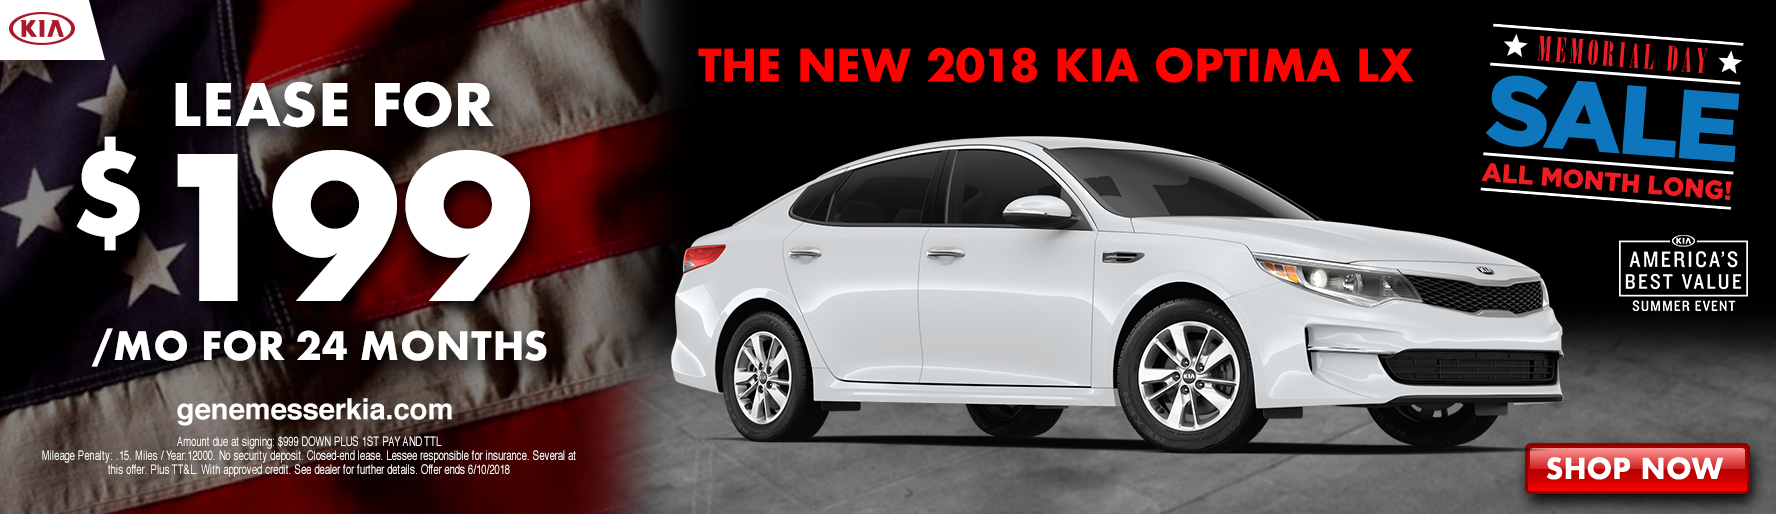 lubbock-tx-2018-kia-optima-lx-deals-near-me